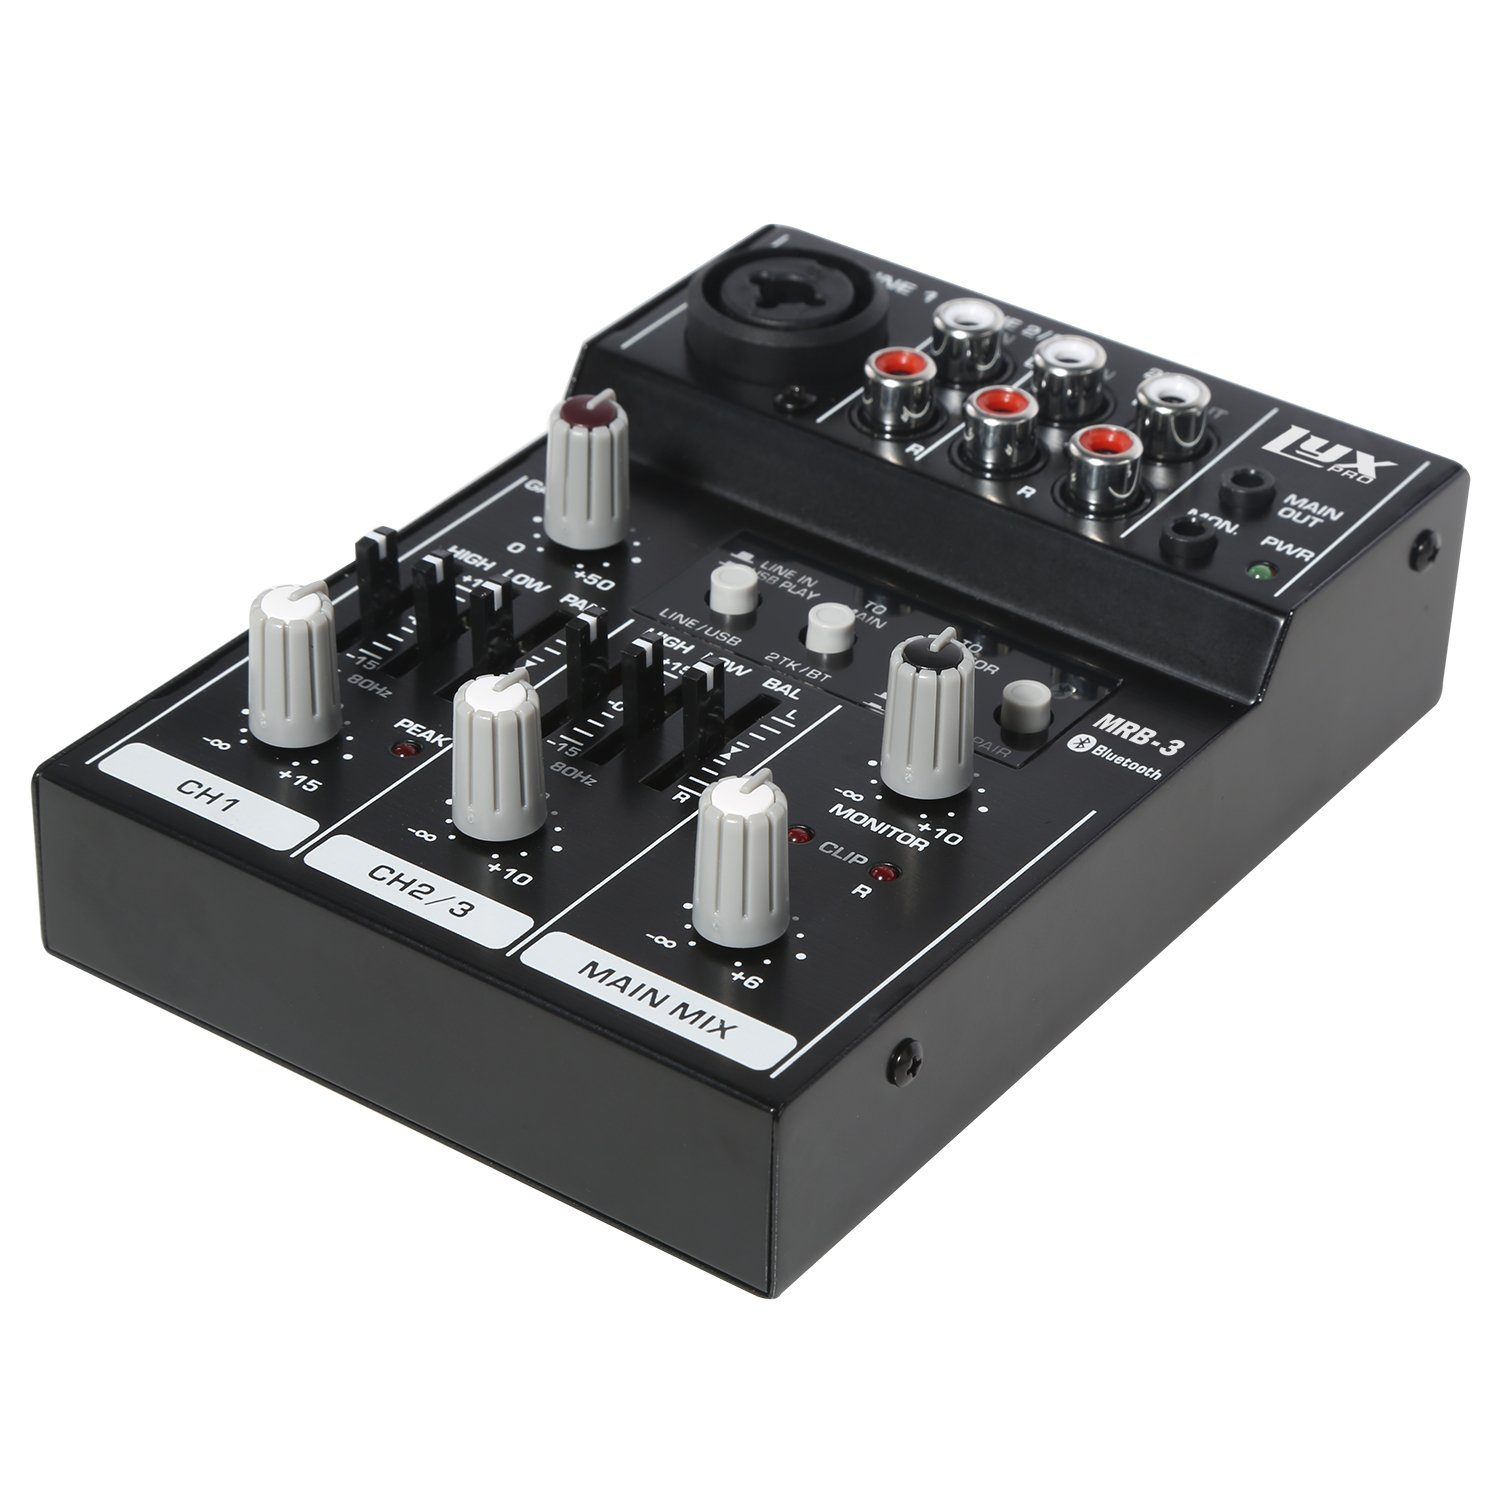 LyxPro MRB3 3-Channel Audio Mixer – Flexible, Compact Personal Pro Audio Mixer with USB & Bluetooth Connections by LyxPro (Image #3)